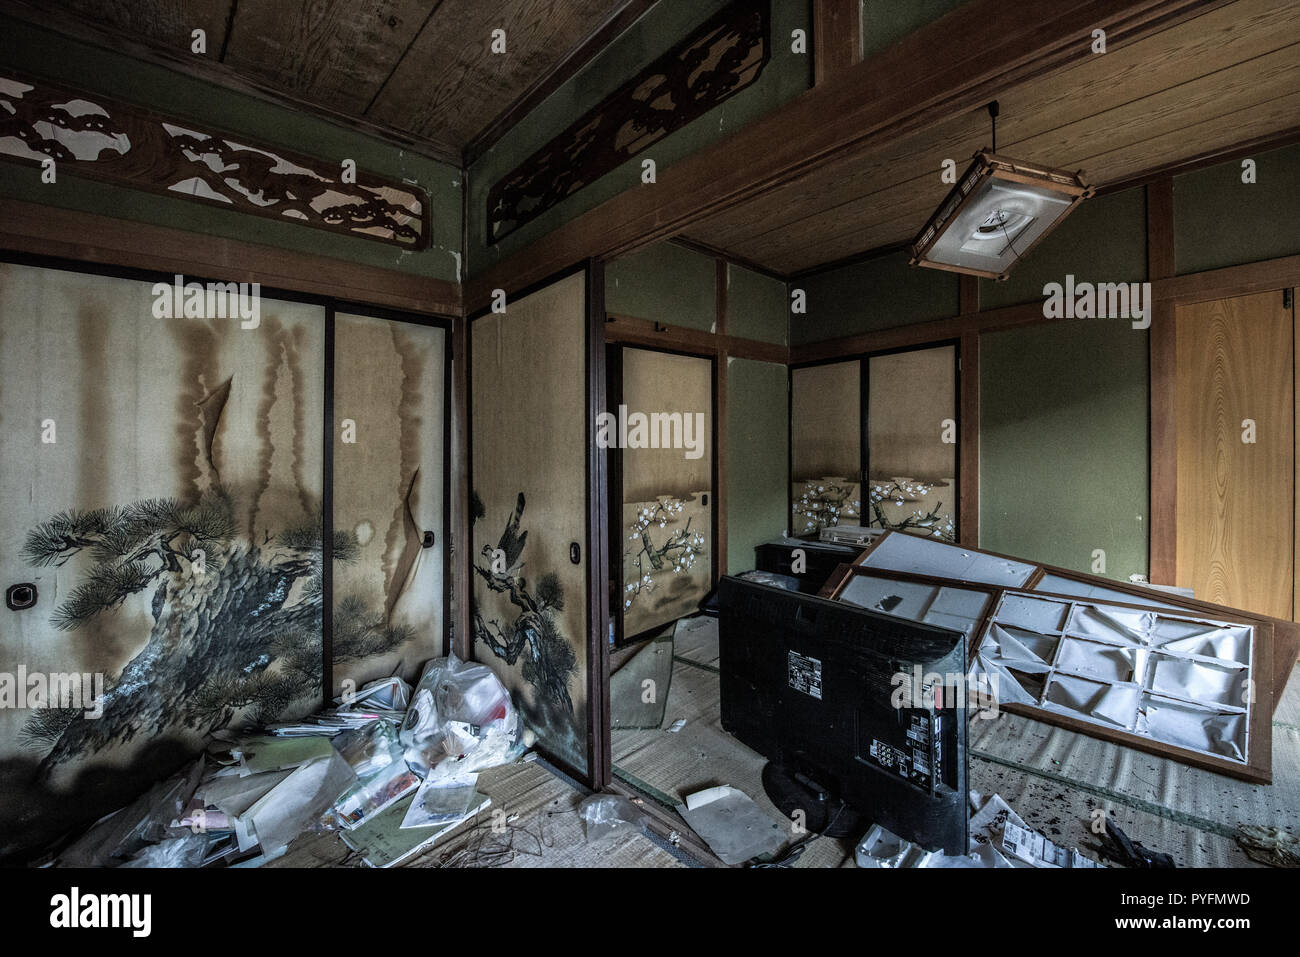 Abandoned town of Futaba, near Fukushima power plant - Stock Image